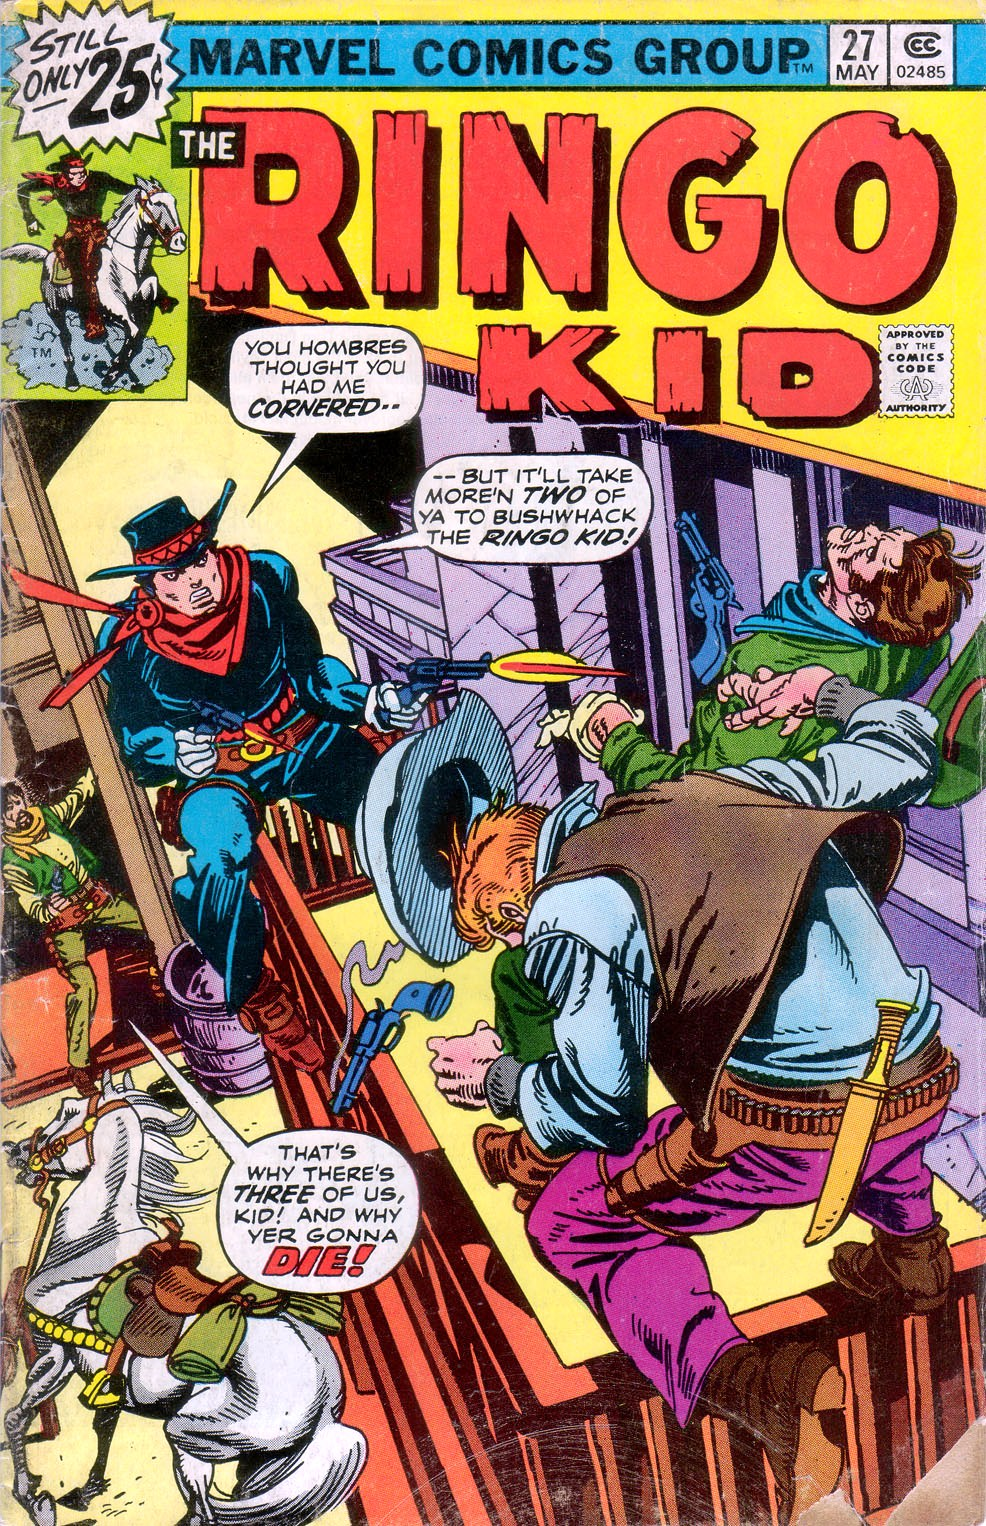 The Ringo Kid V2 27 Story Image